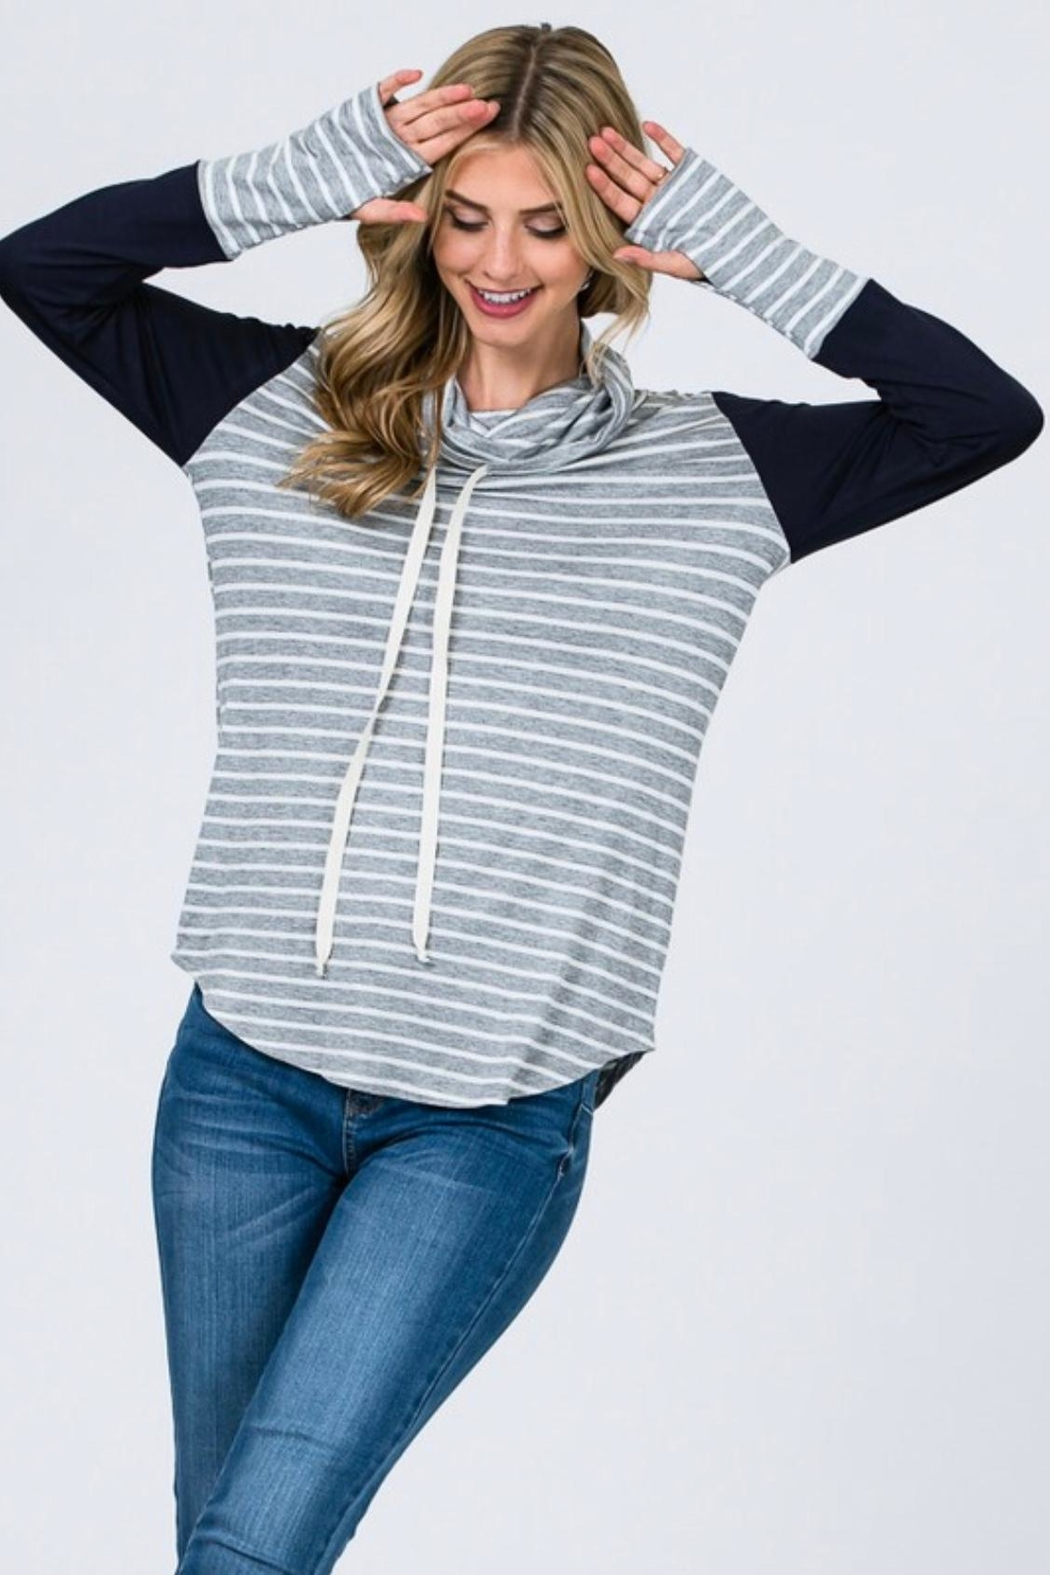 7th Ray Cowl Neck Top - Main Image